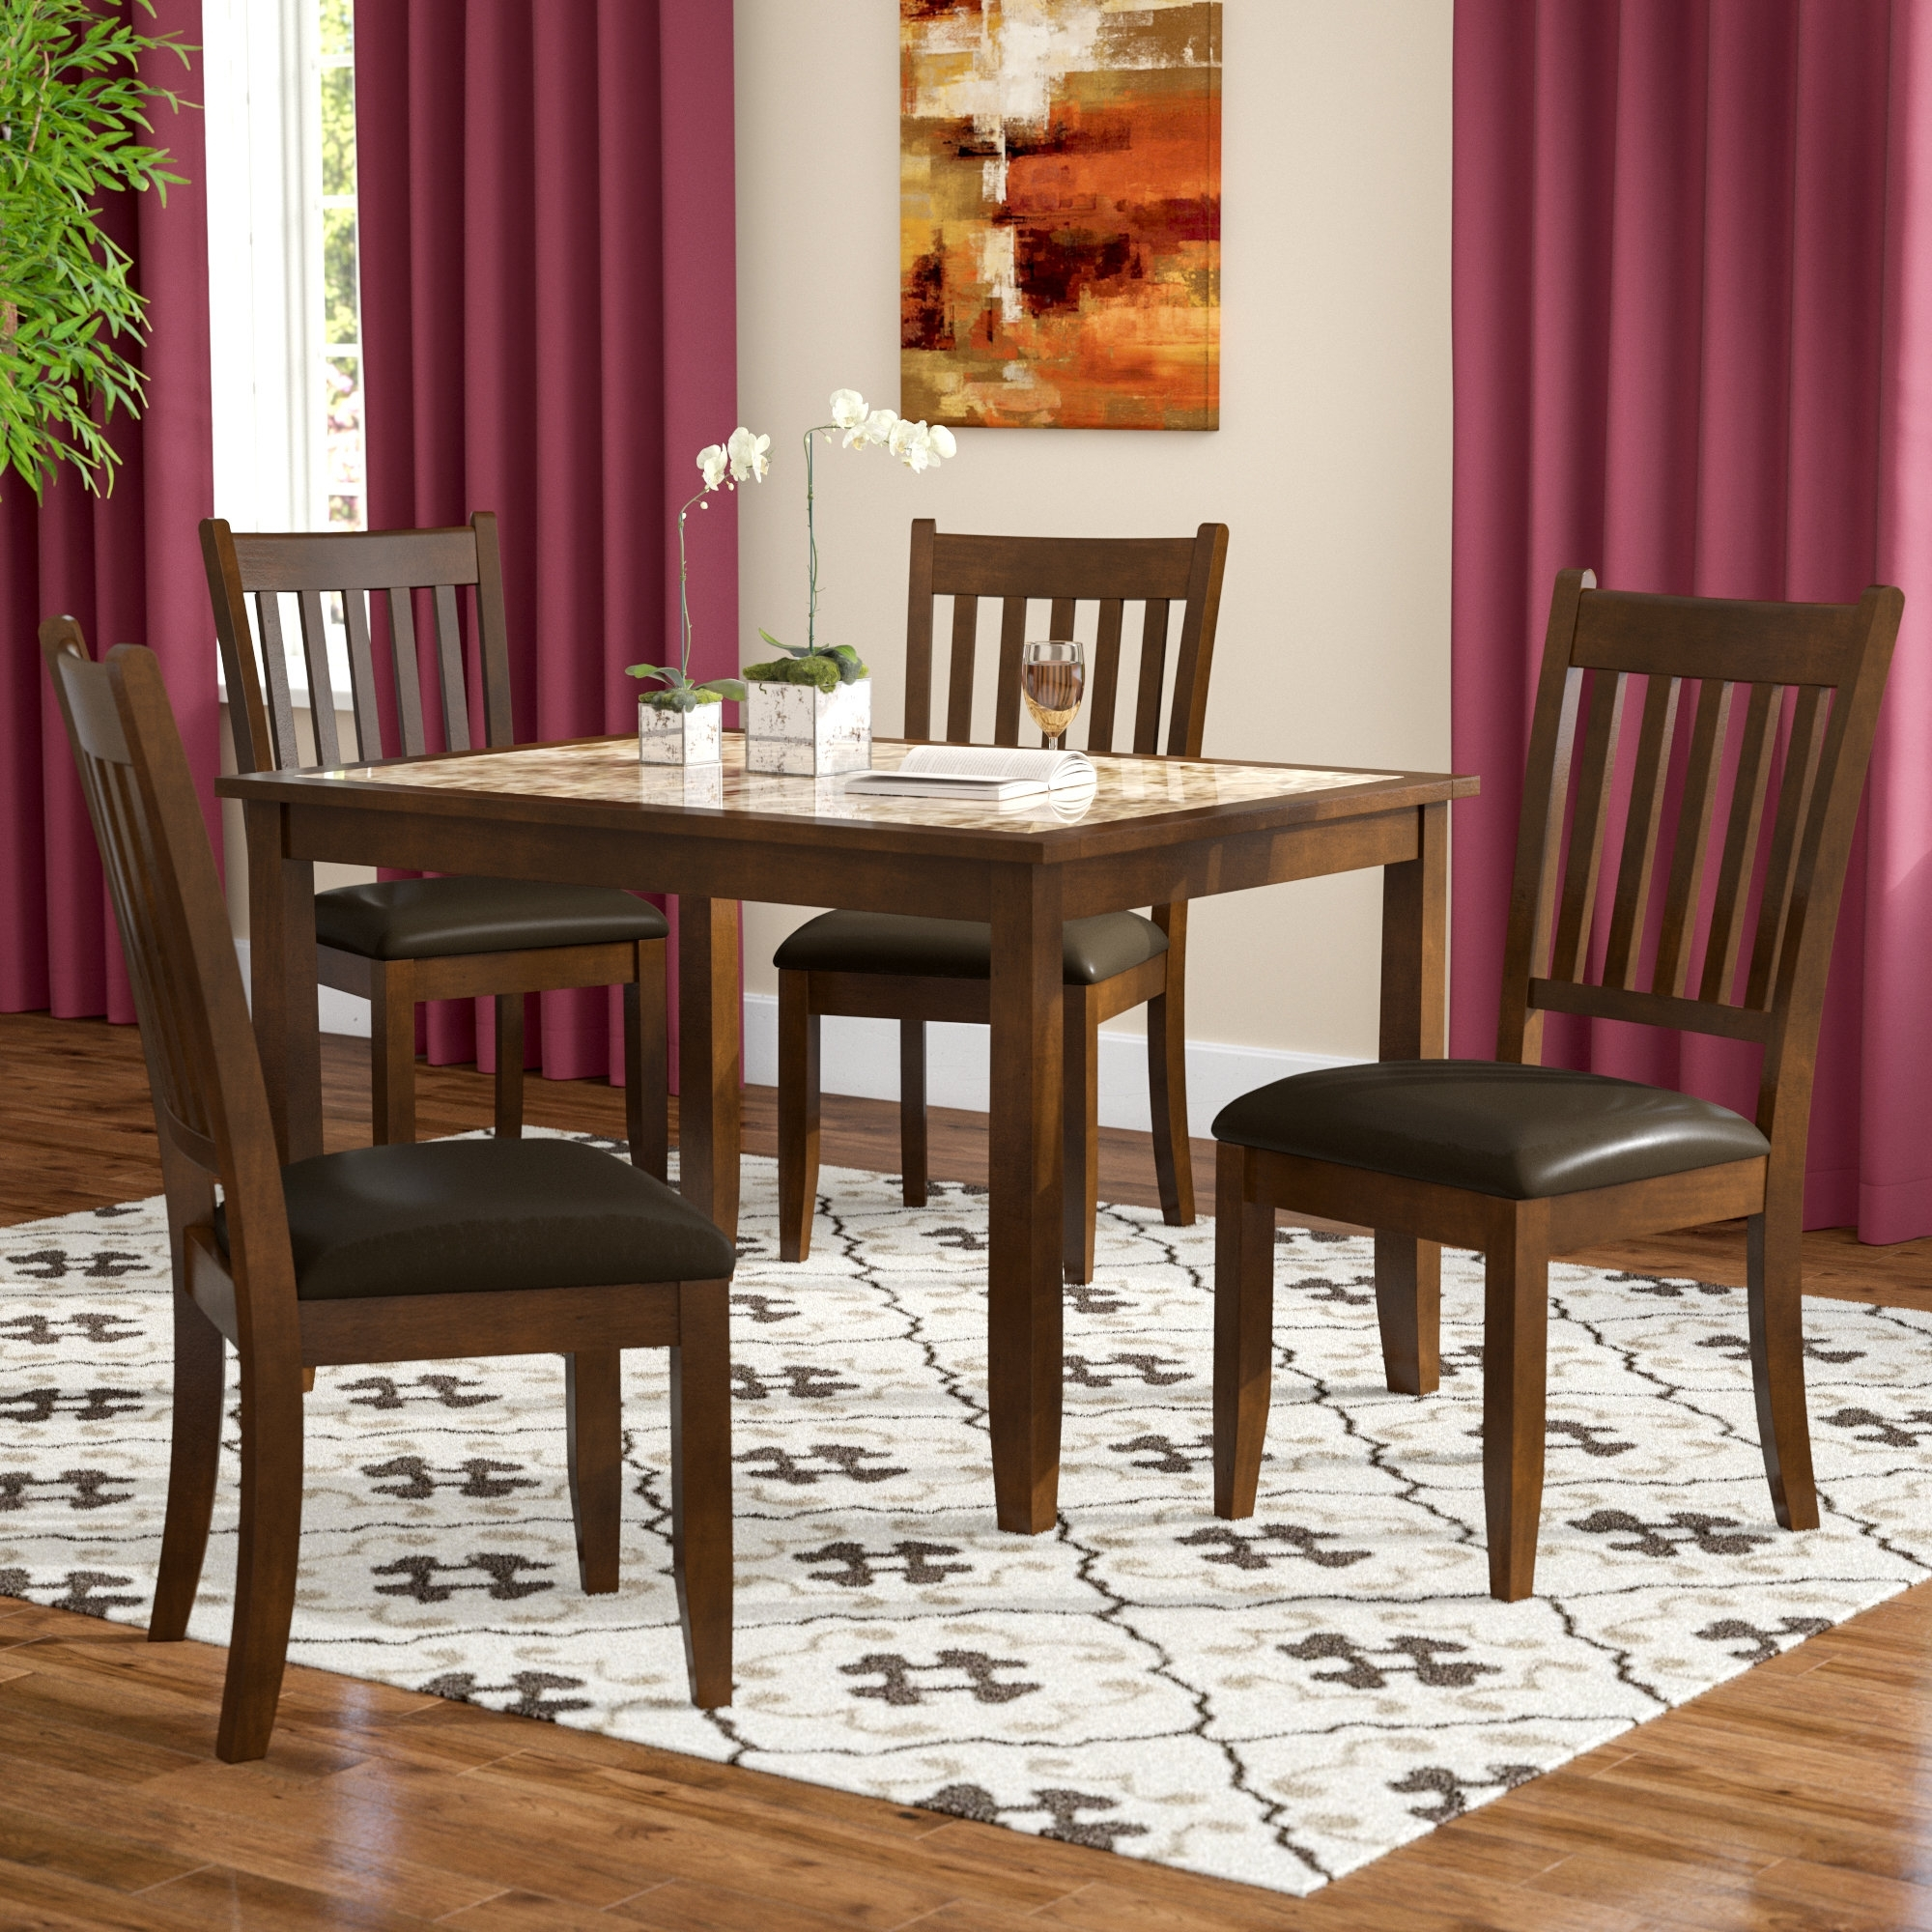 Wayfair With Recent Craftsman 5 Piece Round Dining Sets With Side Chairs (View 24 of 25)